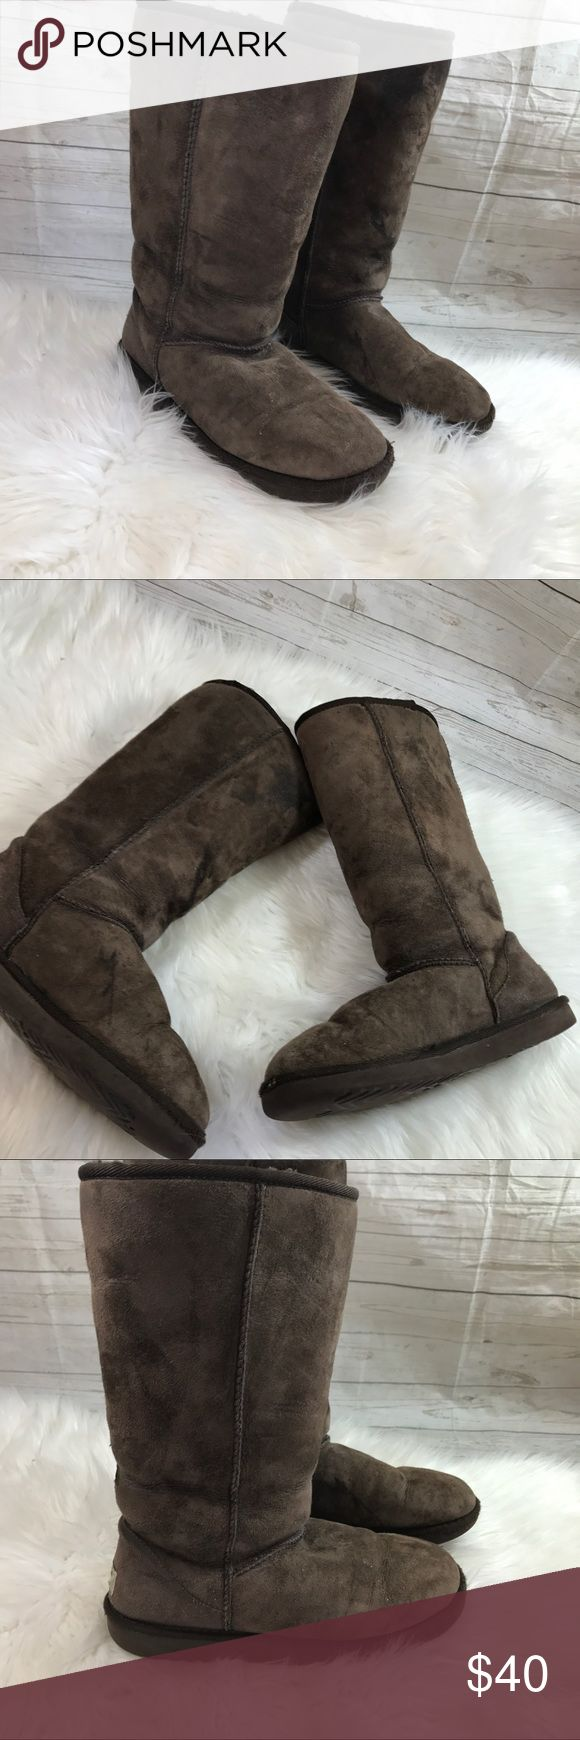 UGG Classic tall sheepskin boots brown Light wear on soles, pen mark on inside of left boot. Needs aftermarket insoles placed inside. Still can be worn without, the wool insoles were removed  Smoke free home  Size 8 UGG Shoes Winter & Rain Boots